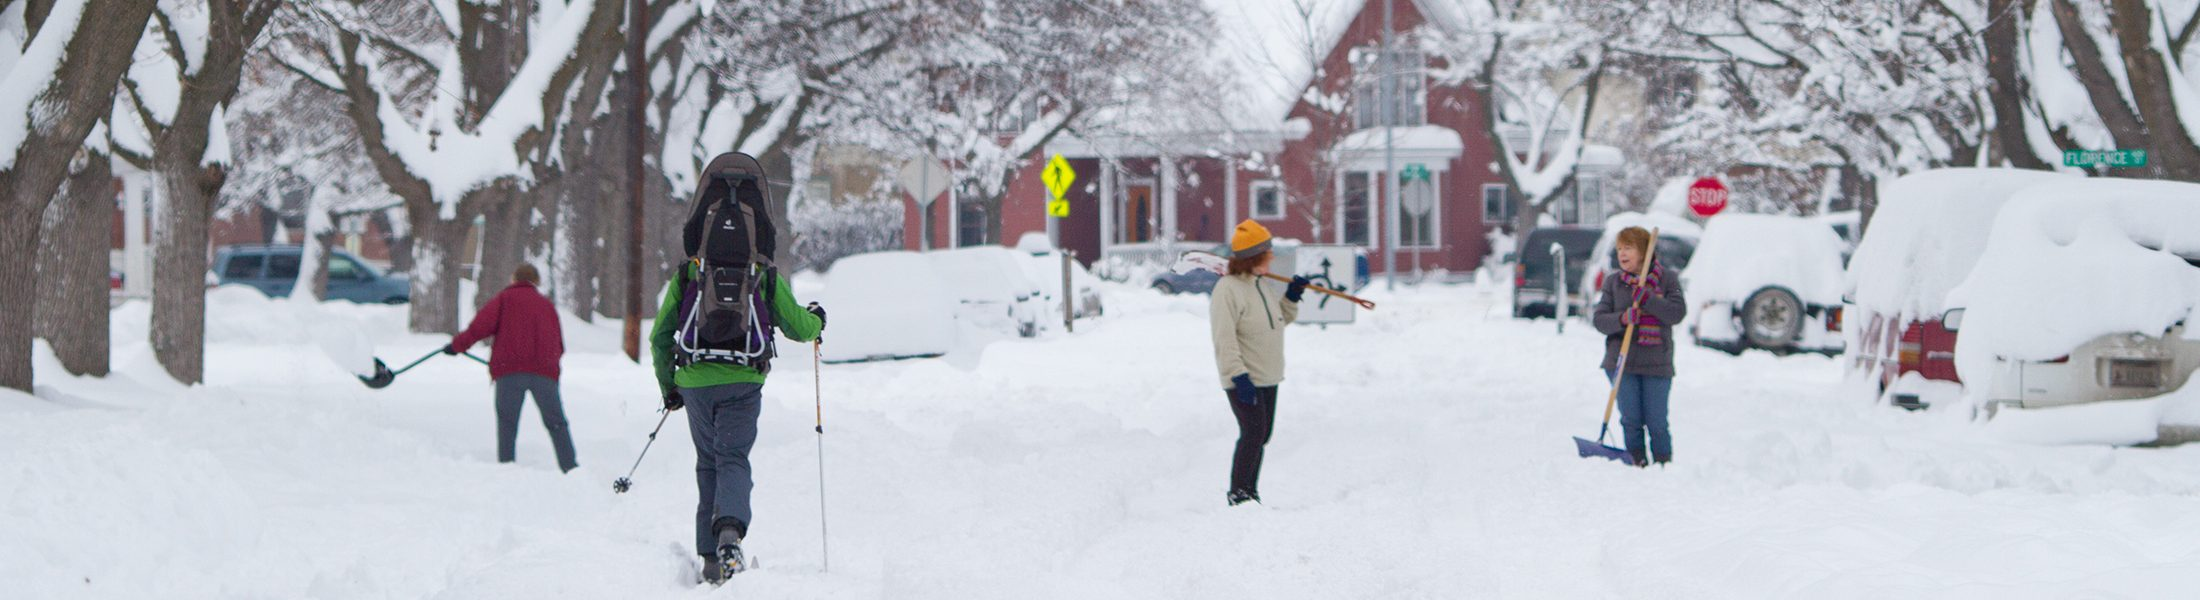 Missoula Named One of the Best U.S. Places for a White Christmas